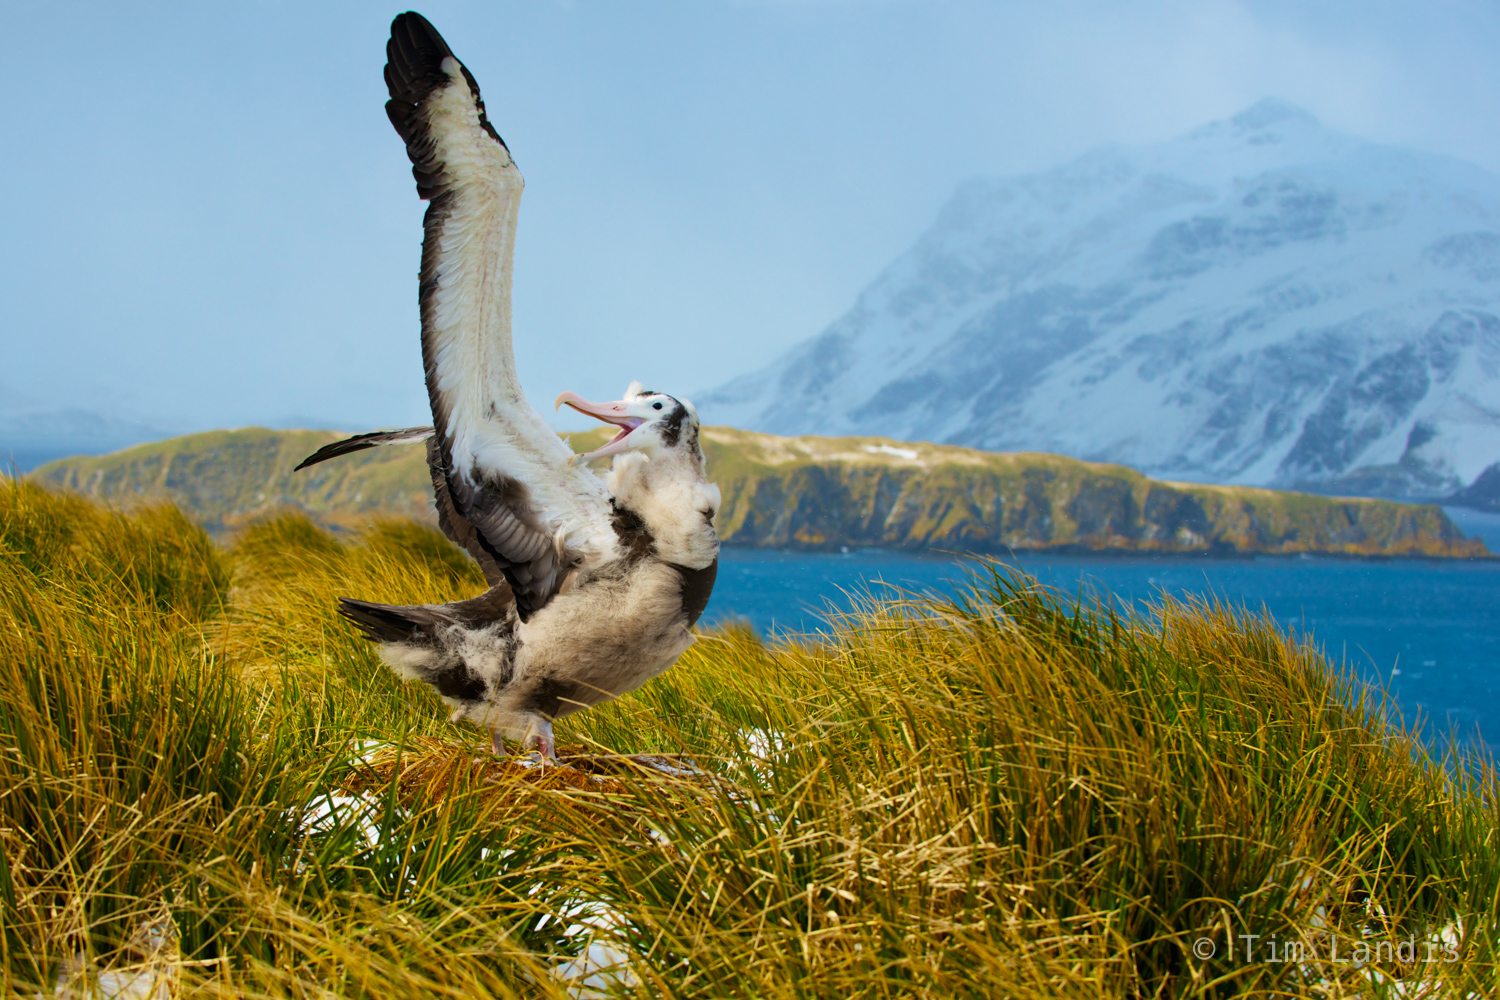 albatross, preflight check out, wandering albatross, photo